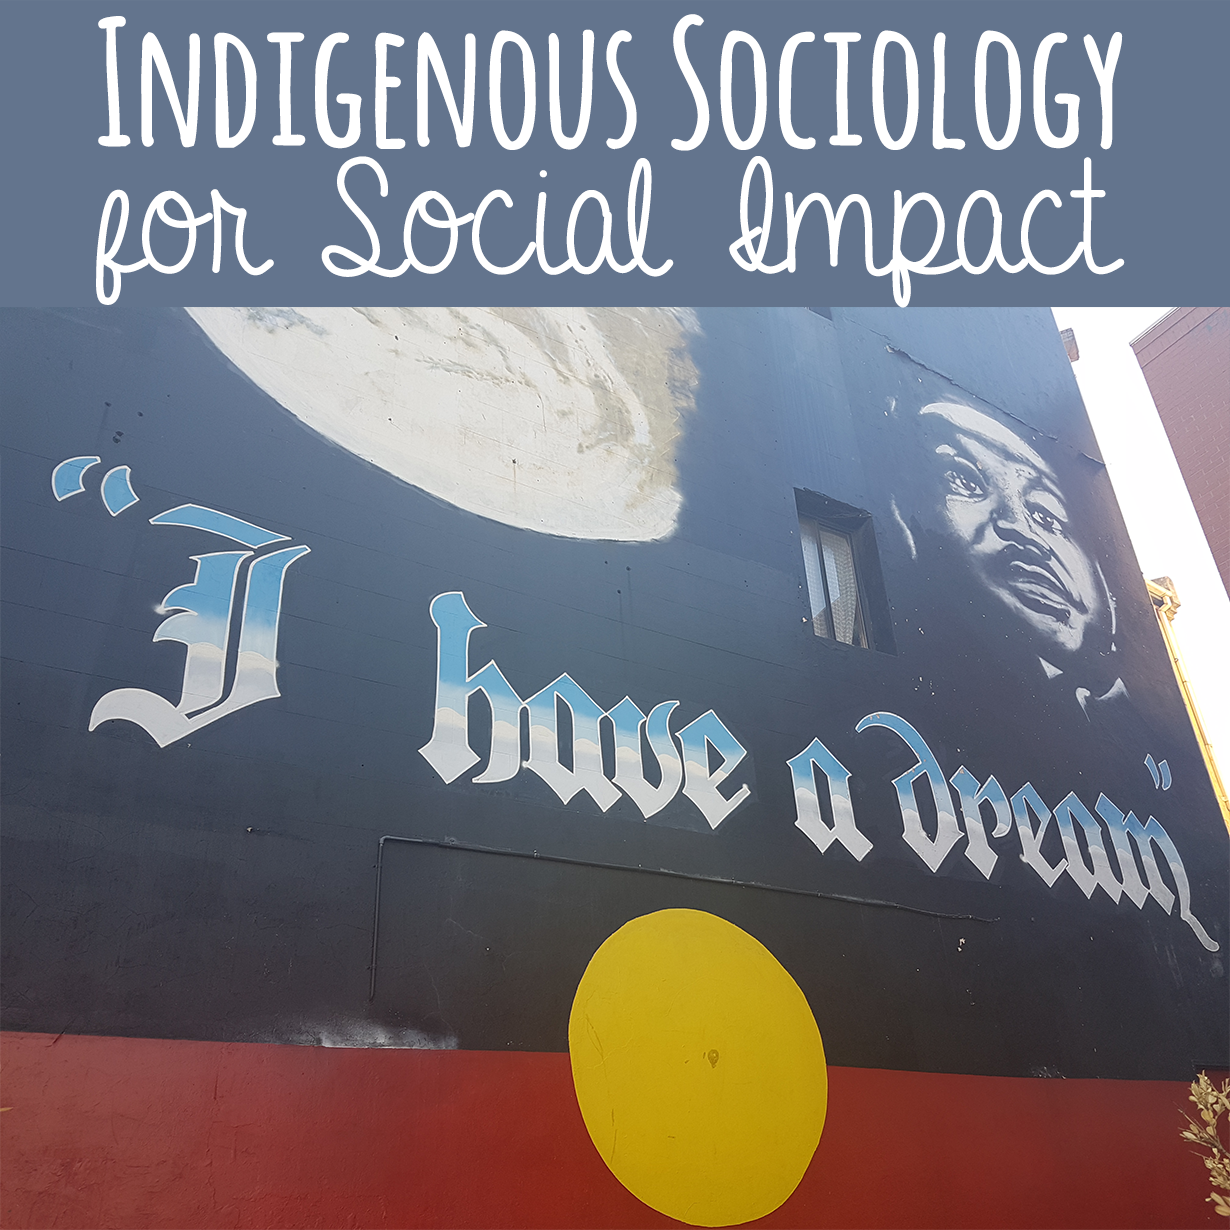 Indigenous Sociology for Social Impact